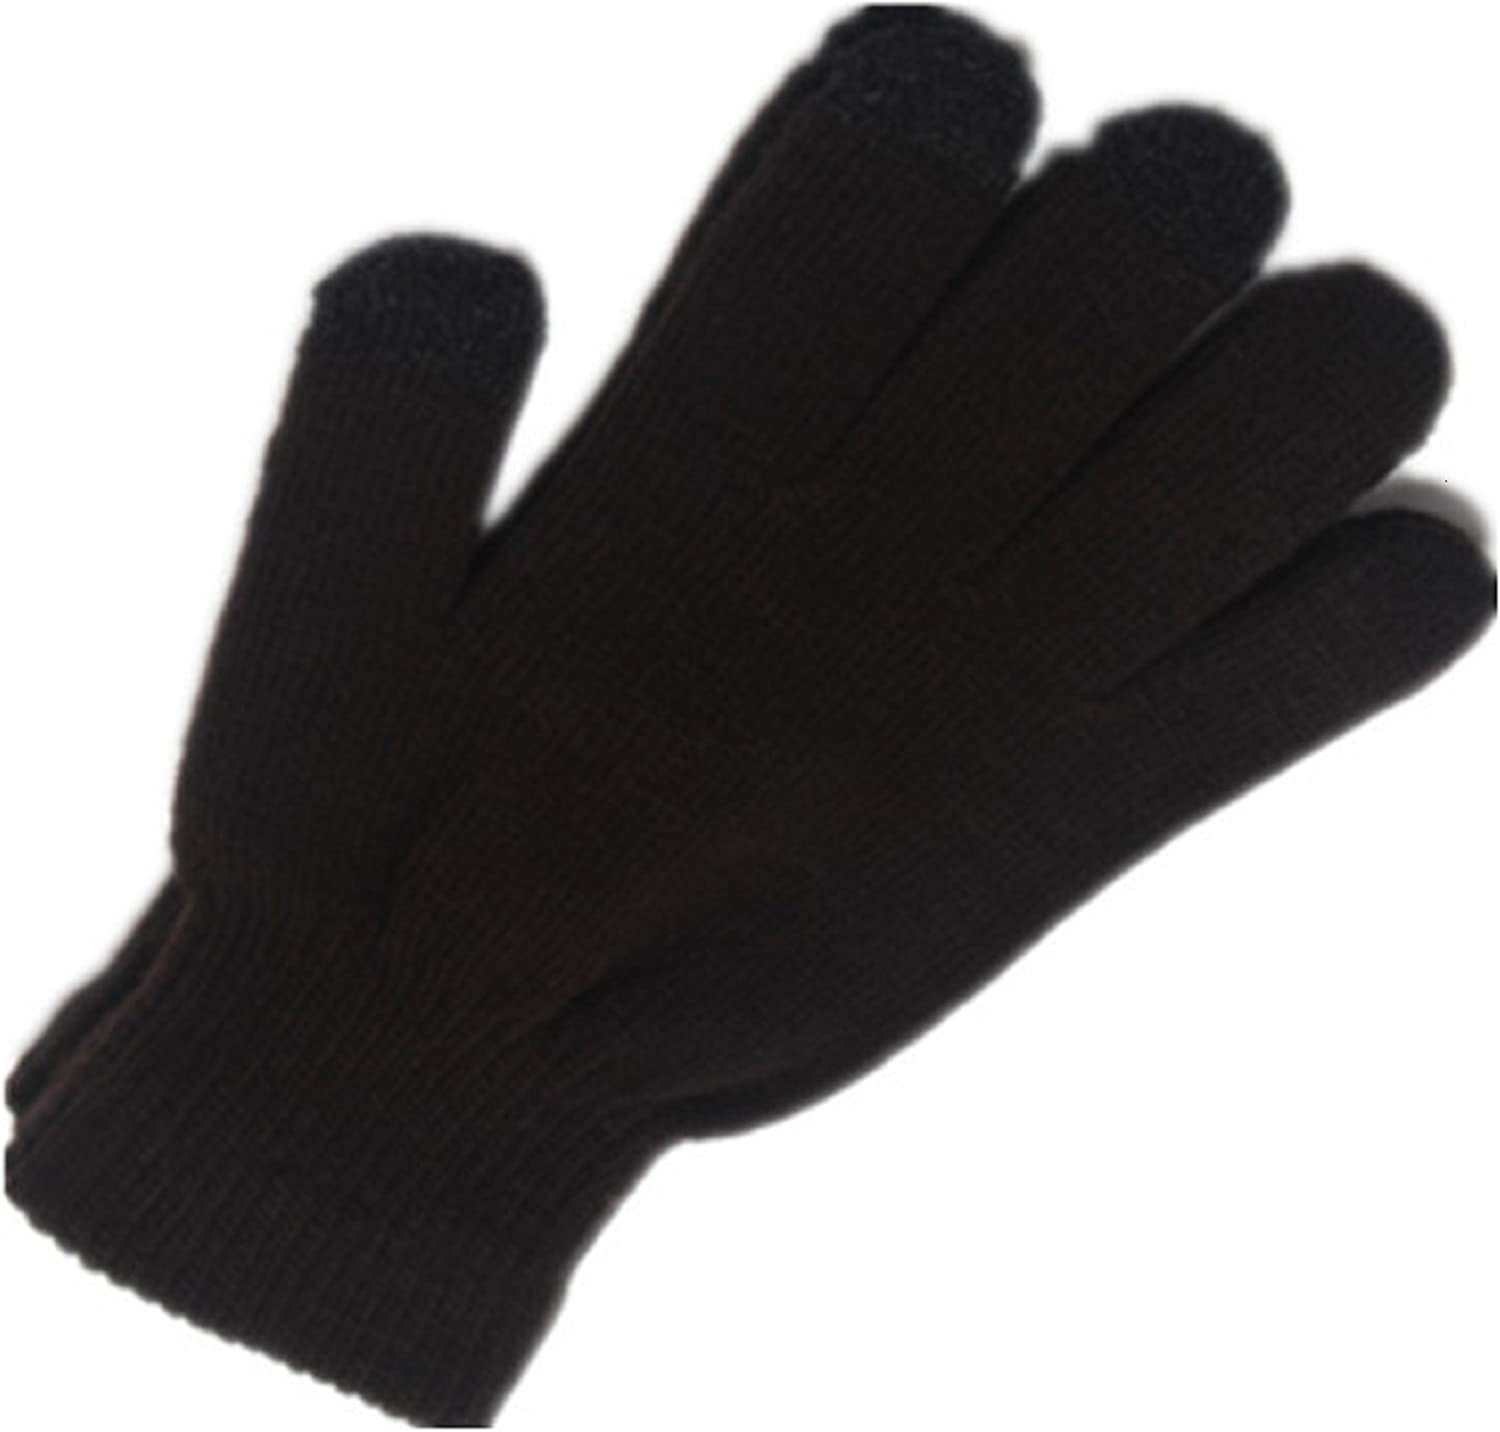 1 or 2 PACK Warm Knitted Stretch touchscreen/texting winter gloves with a soft texture. Just thick enough to not be bulky.